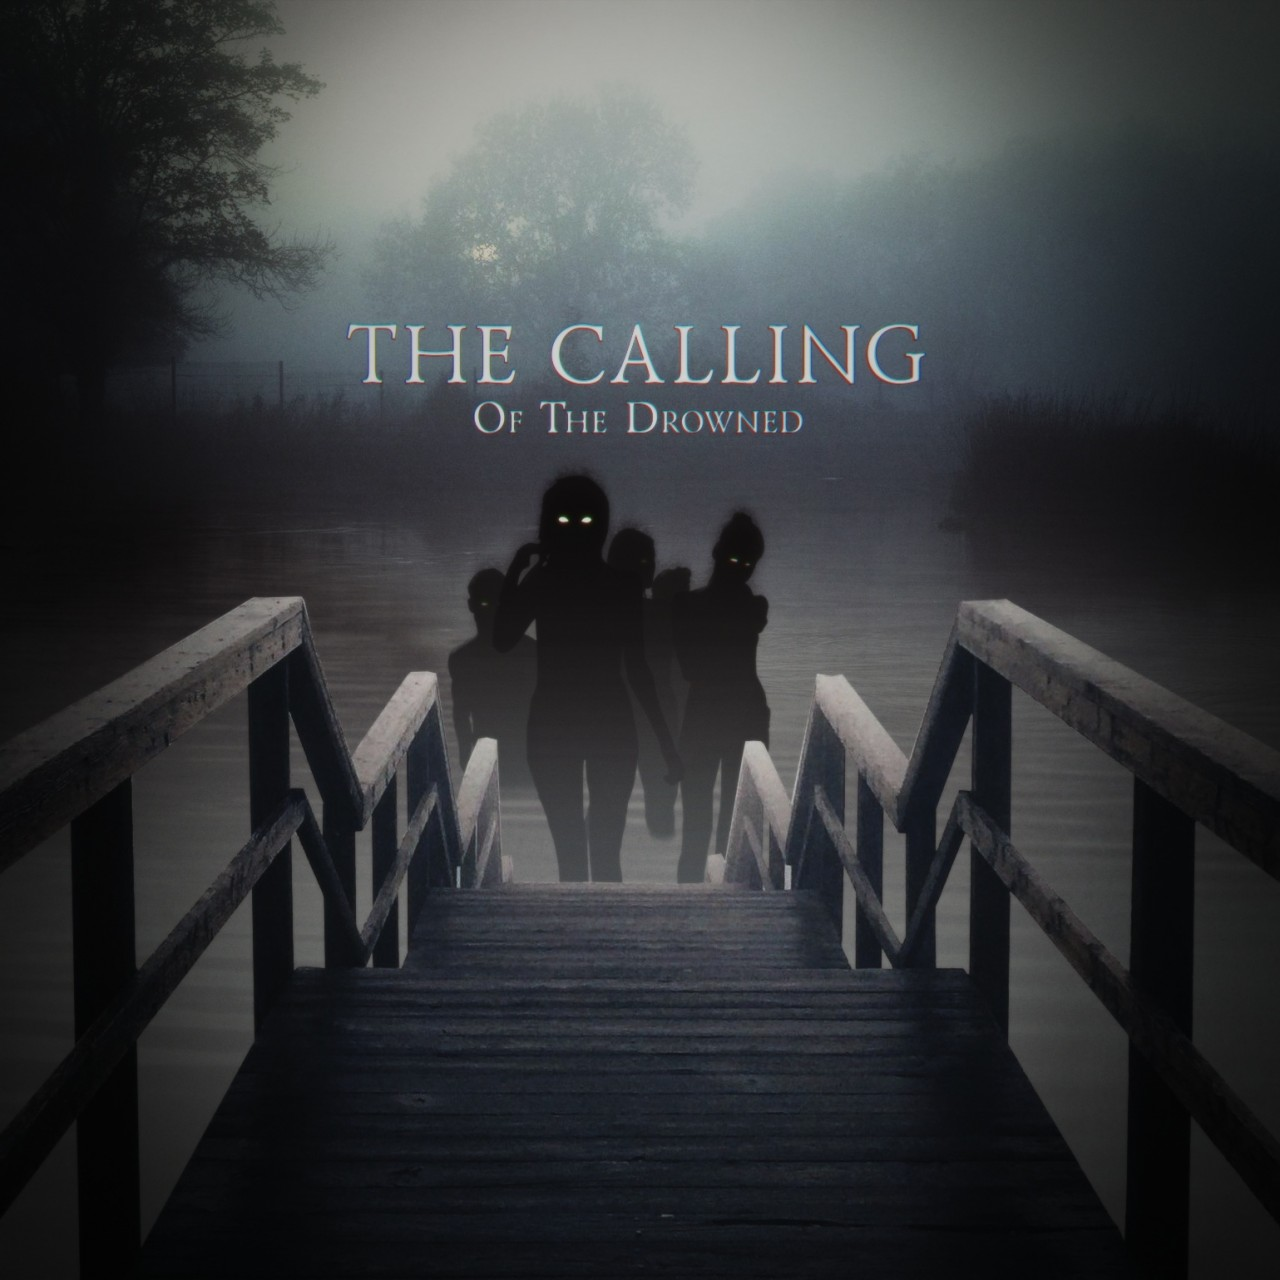 The Calling Of The Drowned